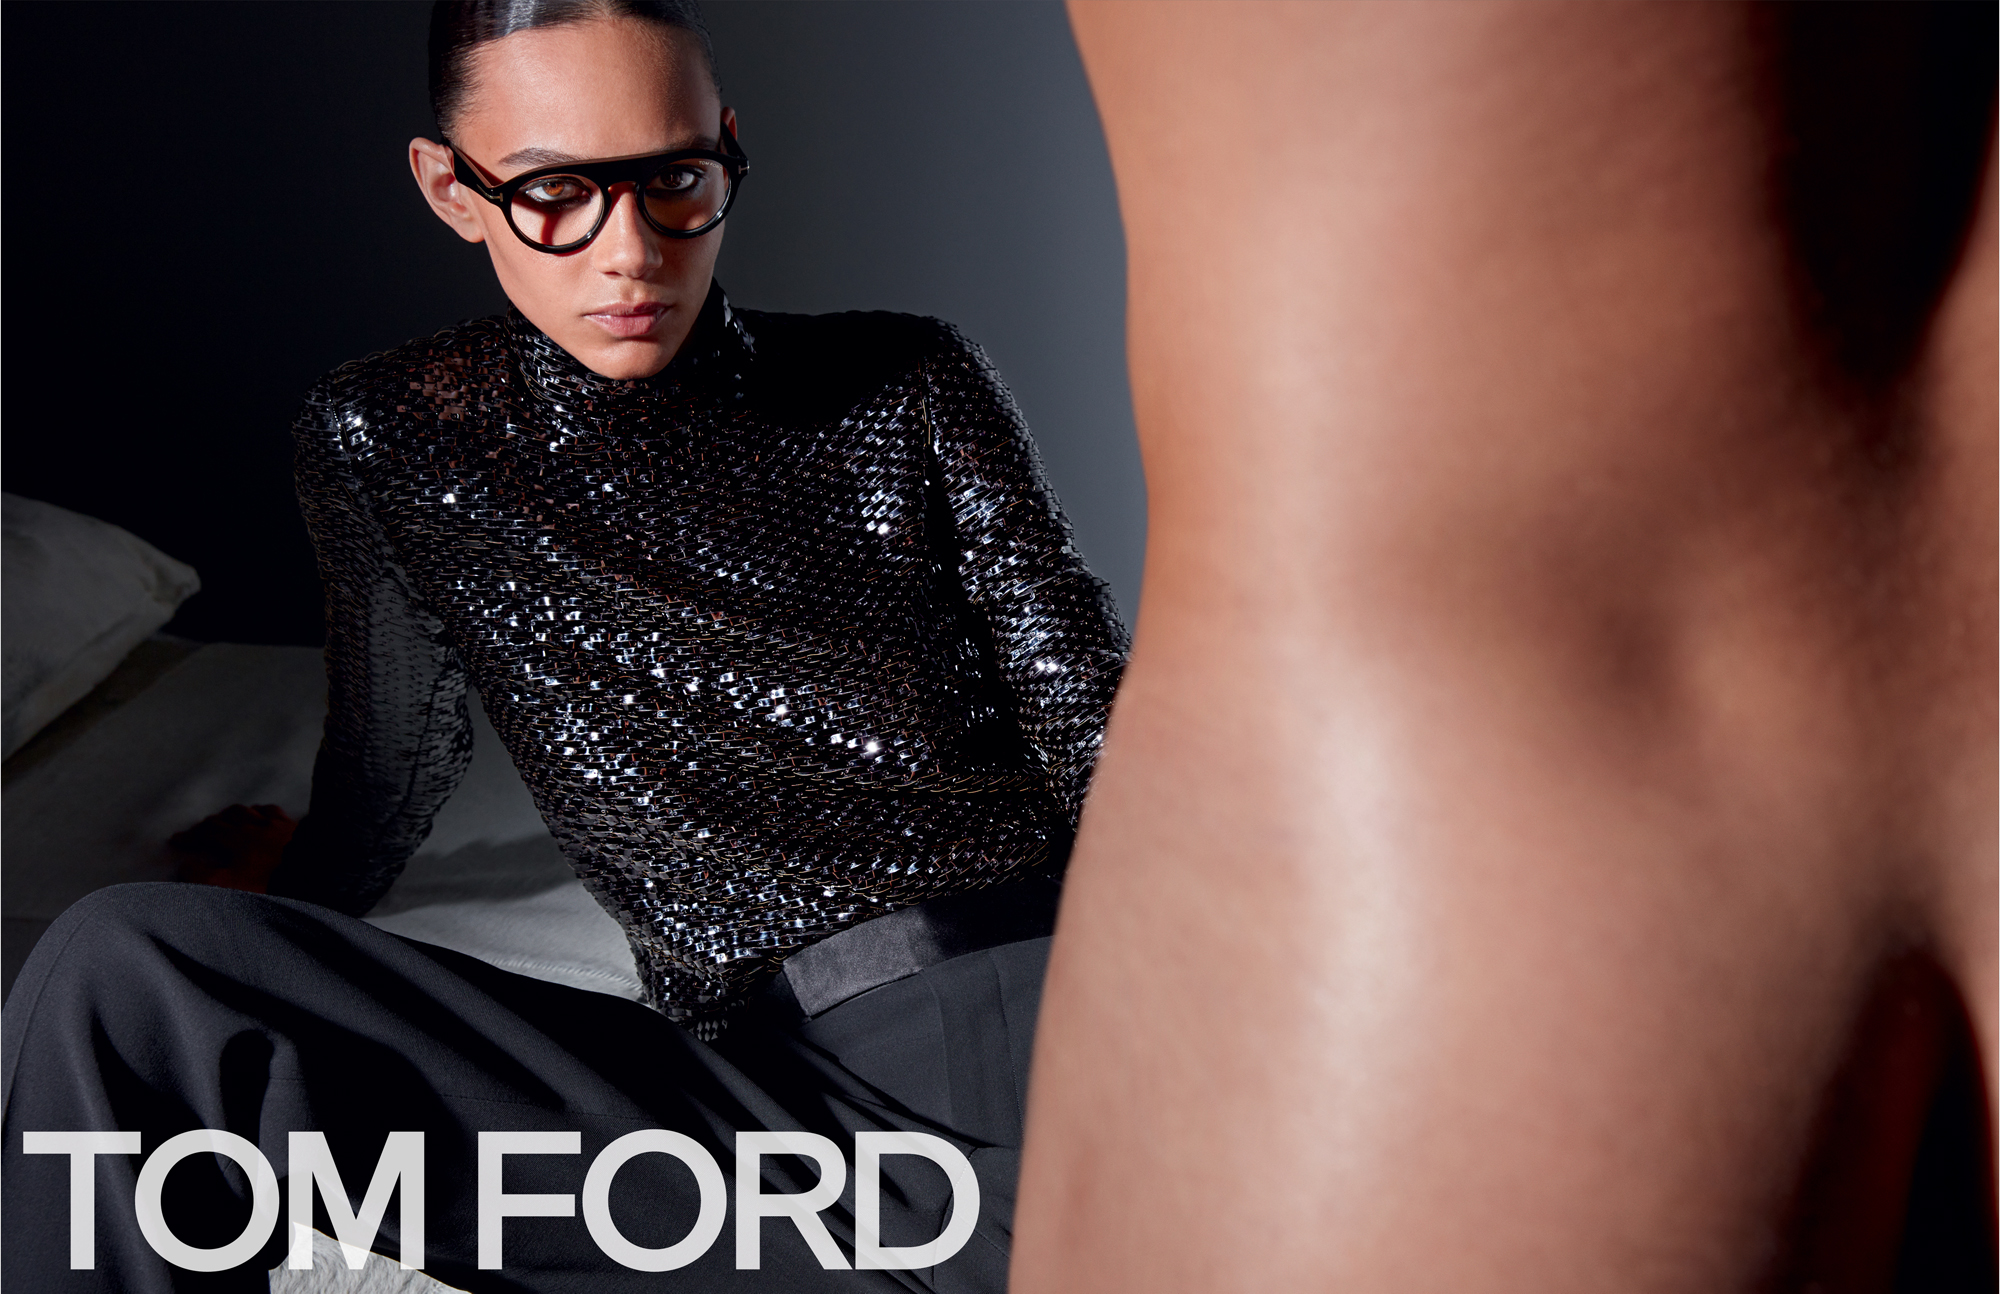 Tom Ford Fall 2017 Ad Campaign The Impression